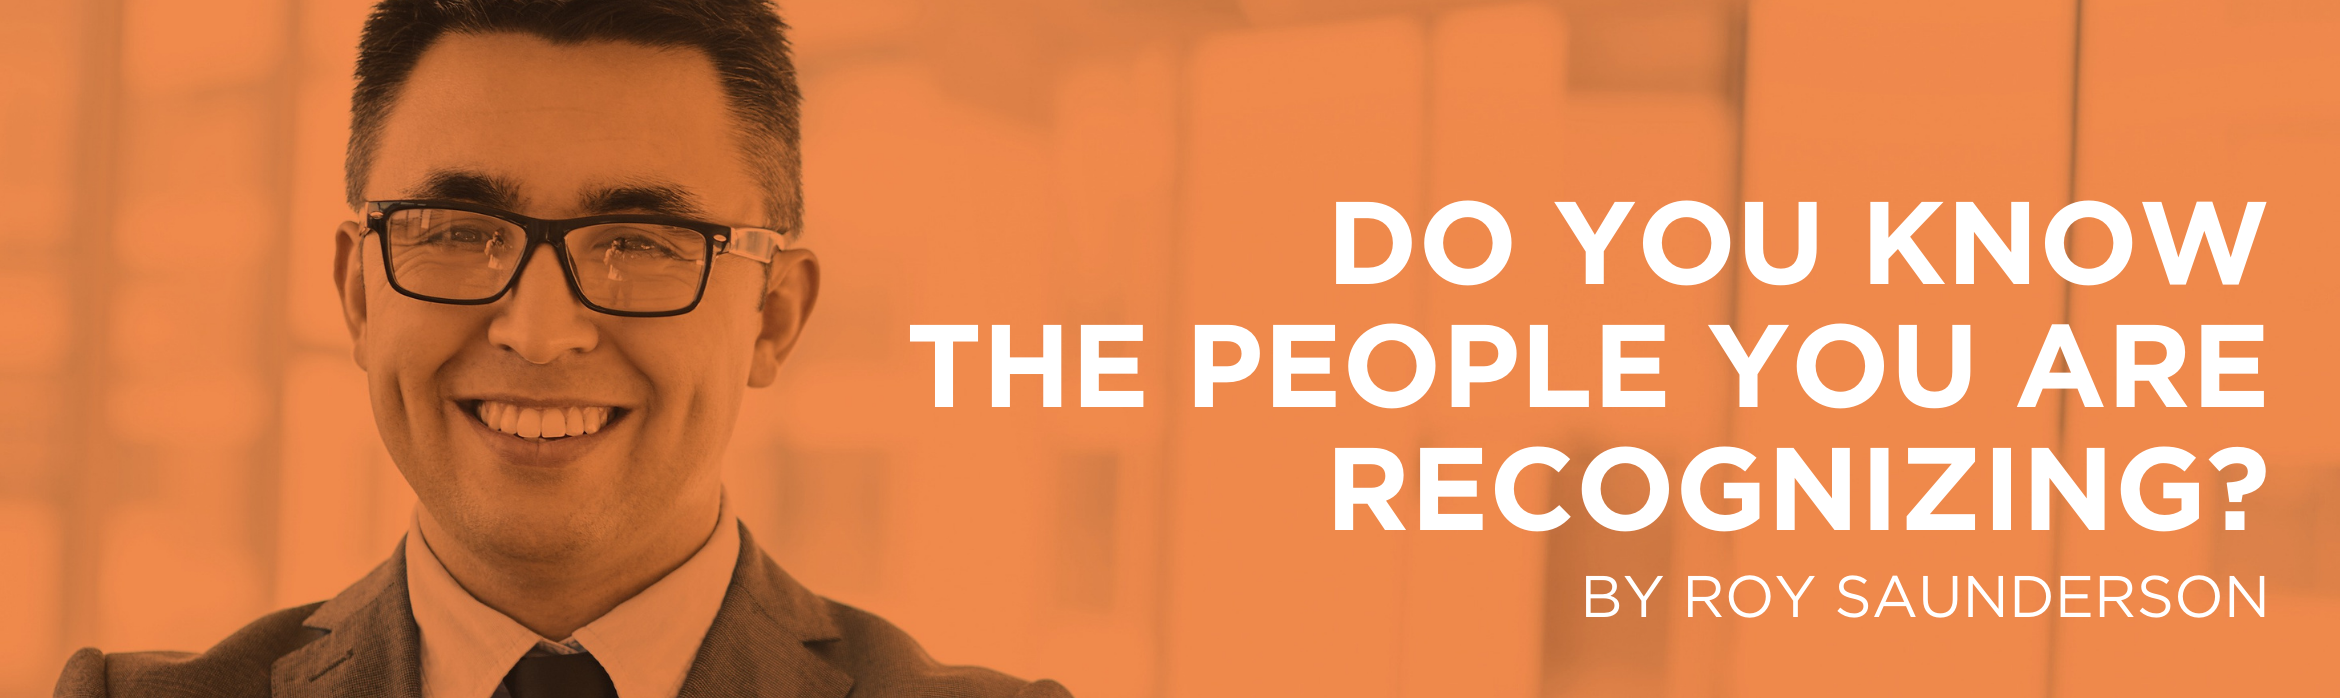 Do You Know The People You Are Recognizing?